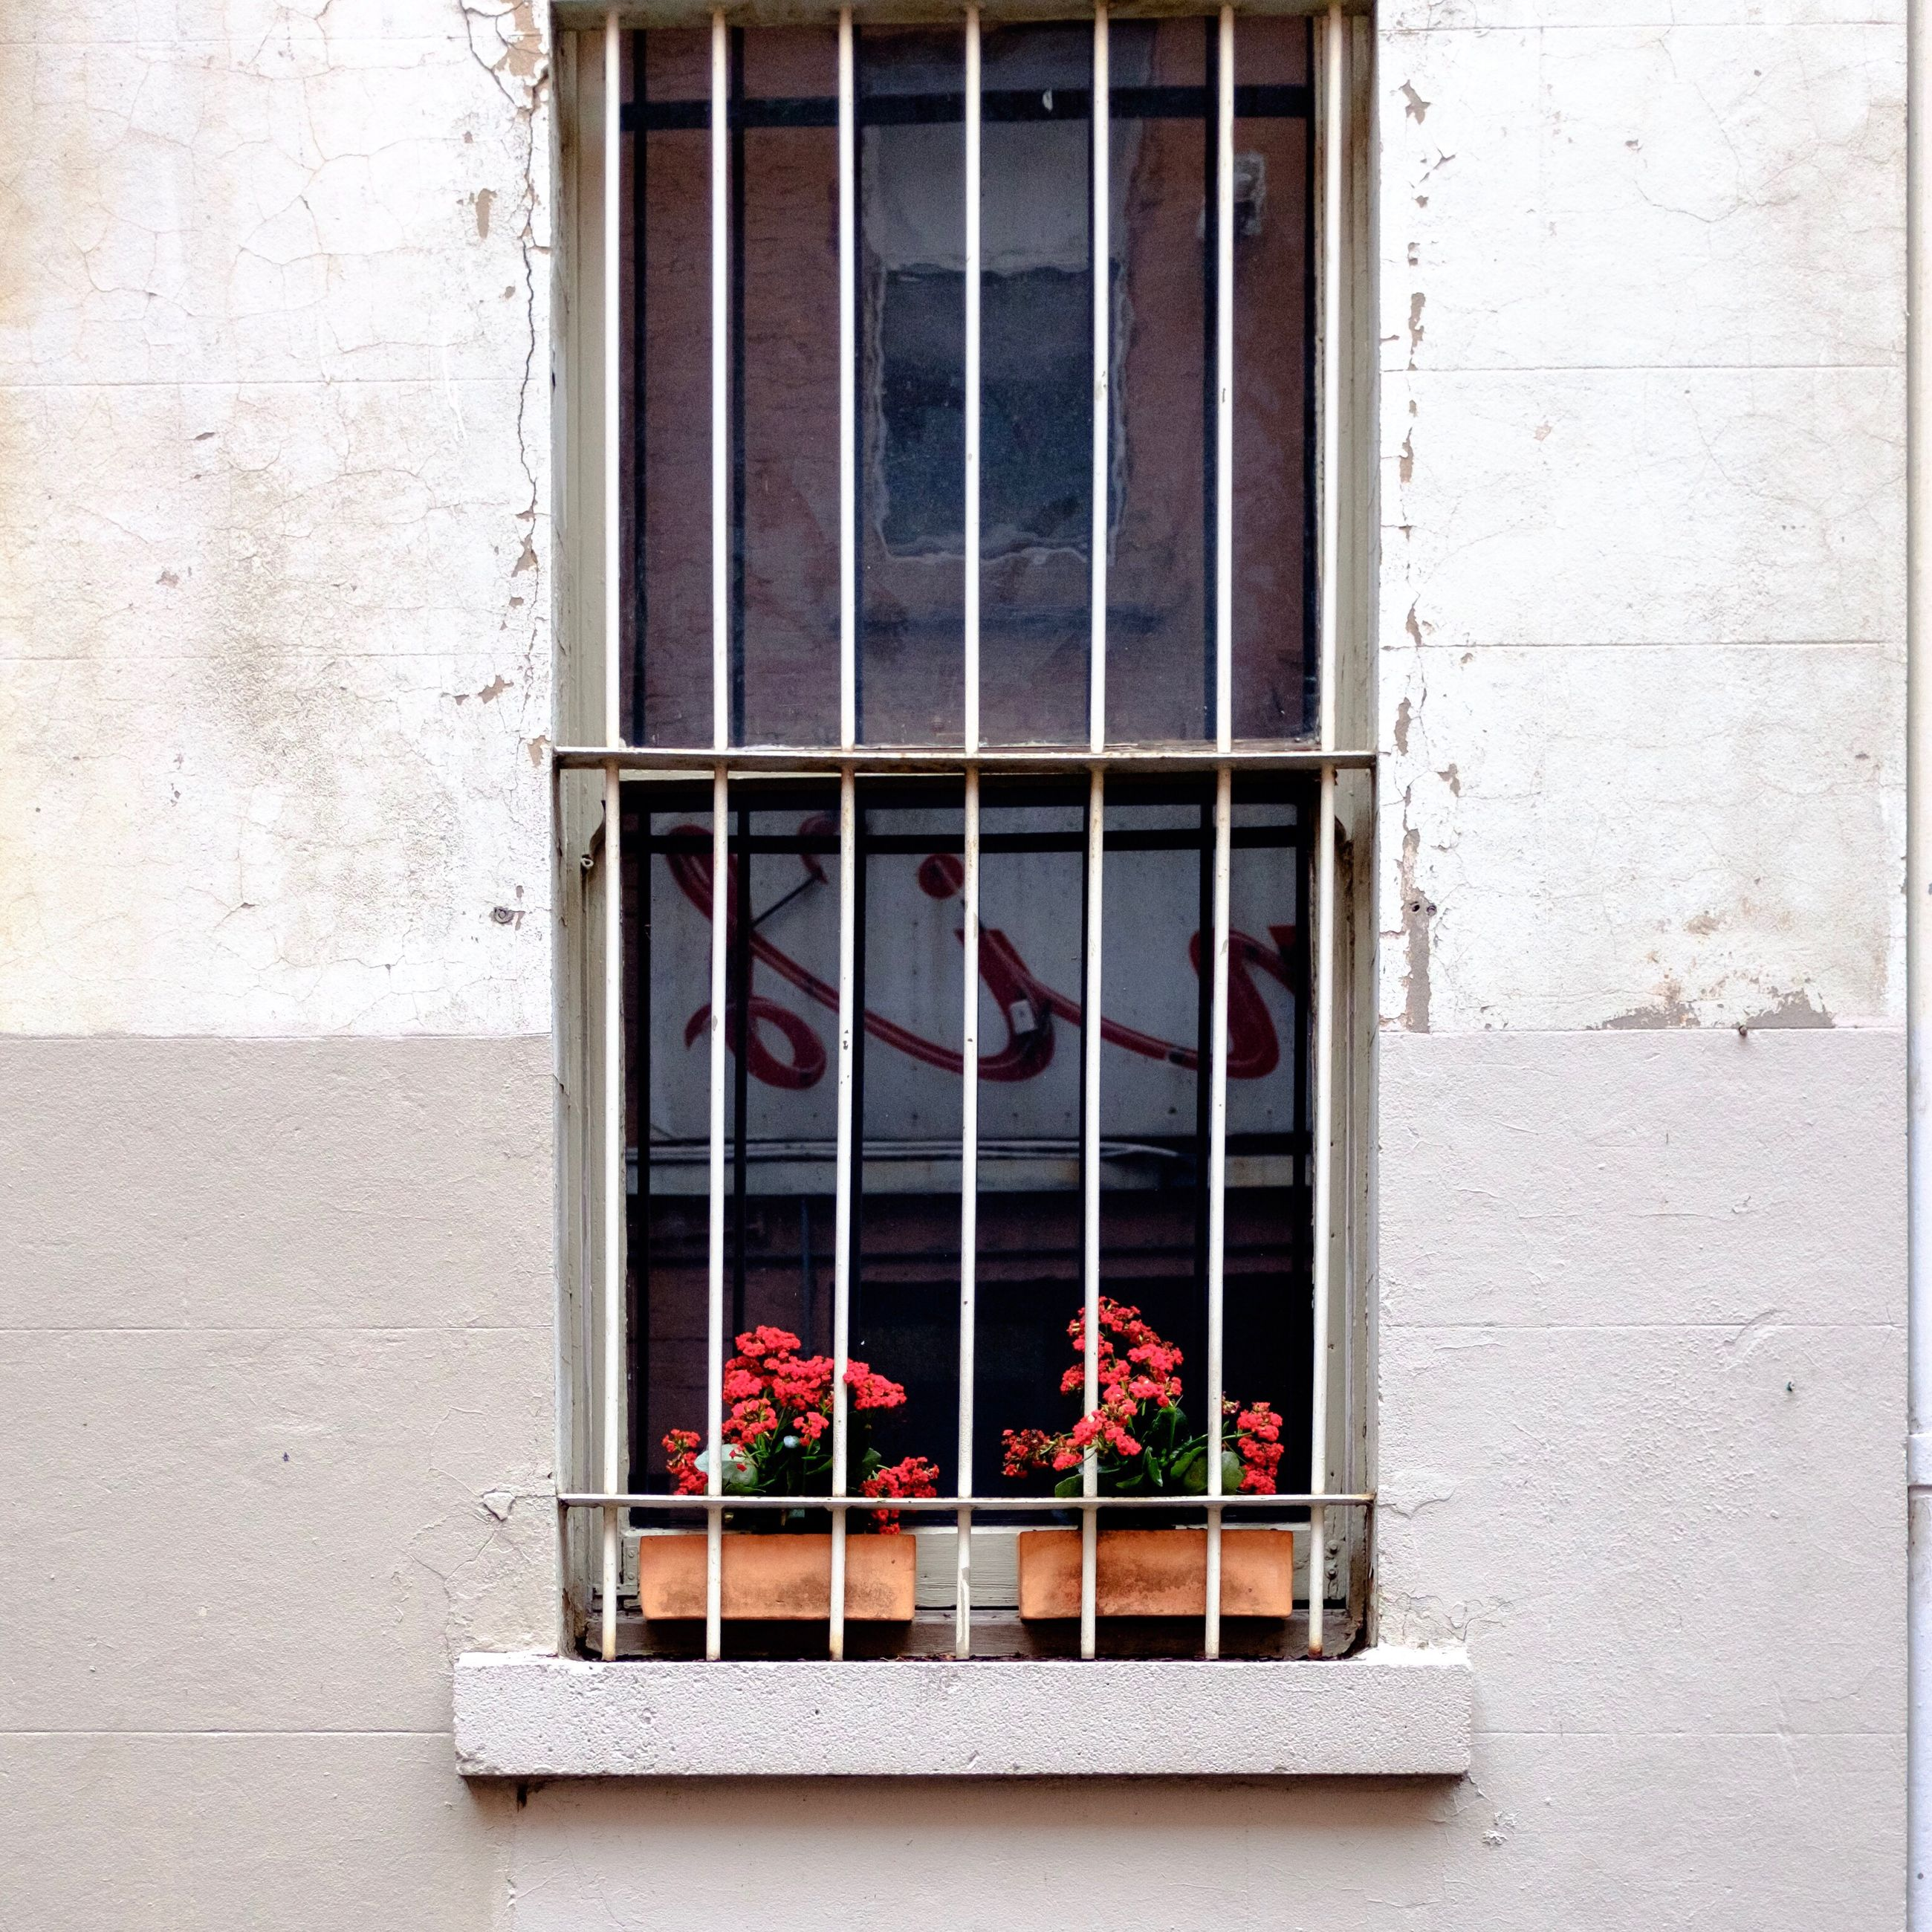 window, flower, growth, potted plant, plant, building exterior, freshness, window sill, flower pot, architecture, day, pink color, fragility, outdoors, nature, geometric shape, in bloom, no people, arrangement